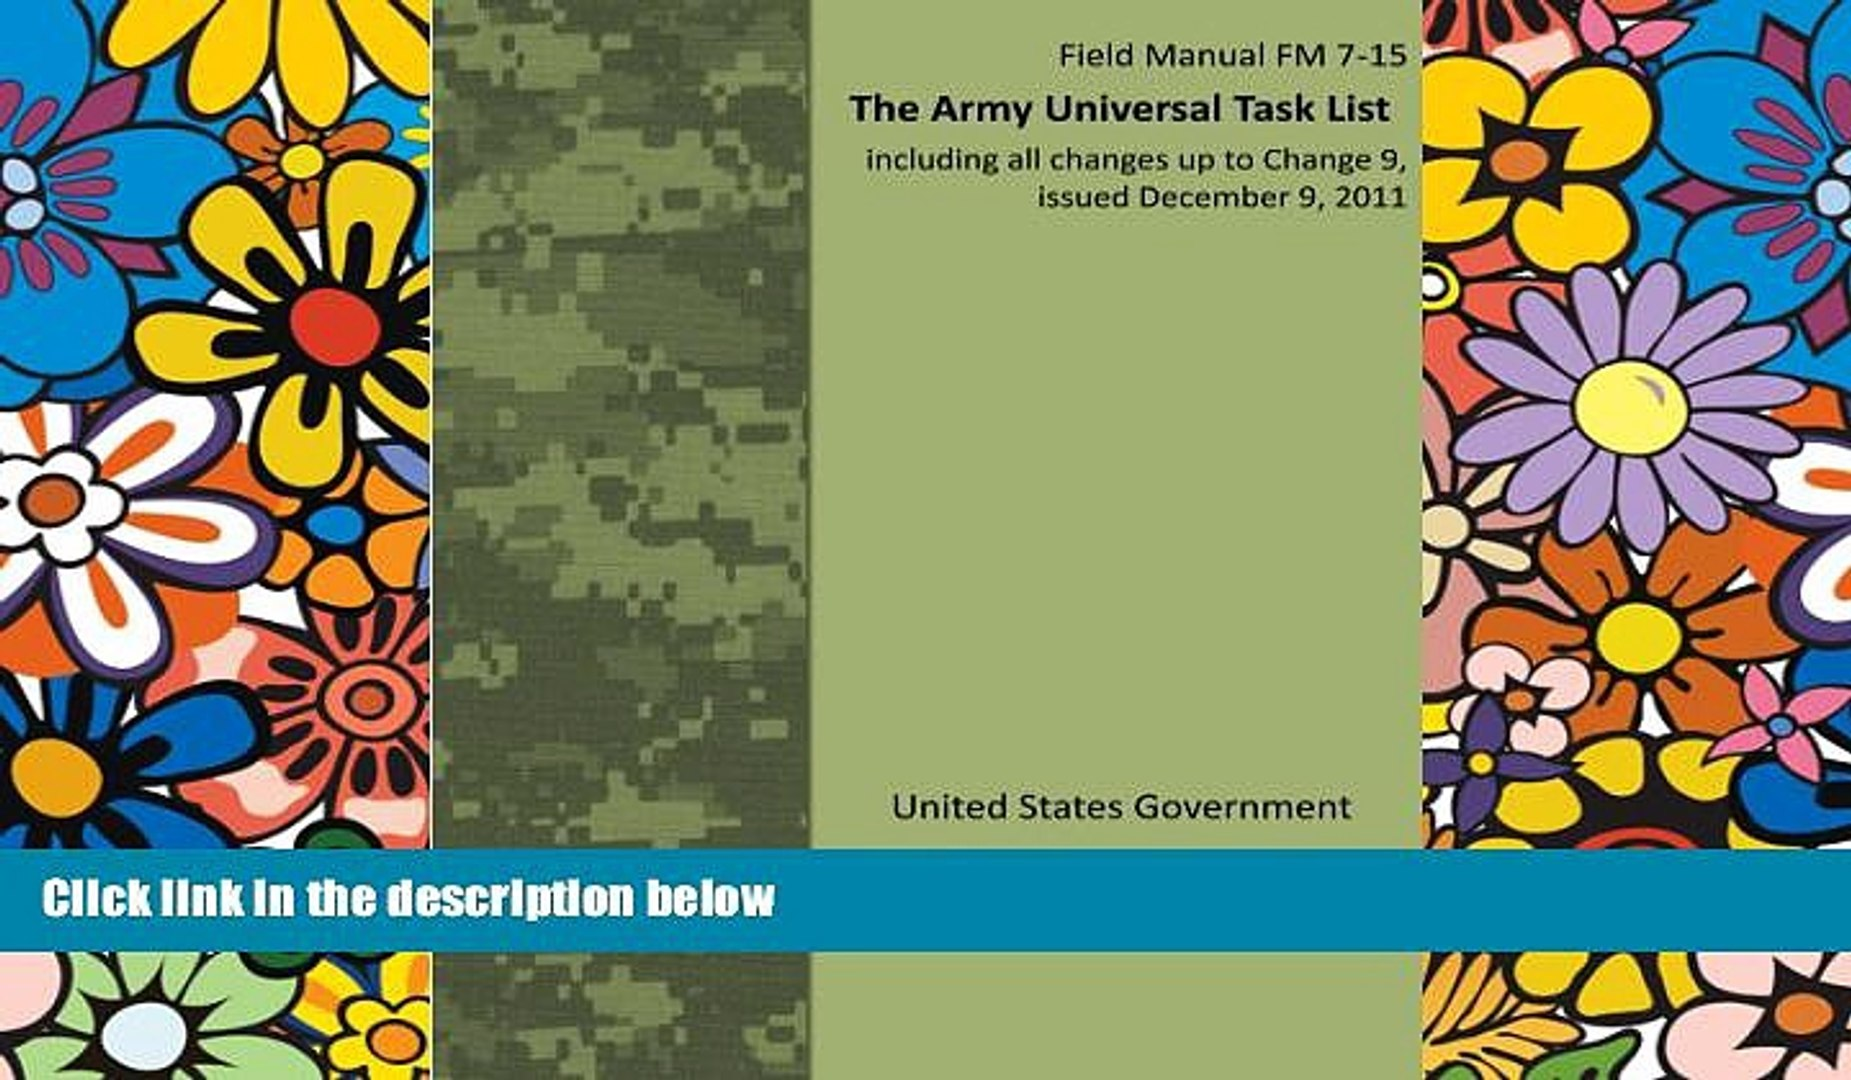 Best Price Field Manual FM 7-15 The Army Universal Task List including all changes up to Change 9,